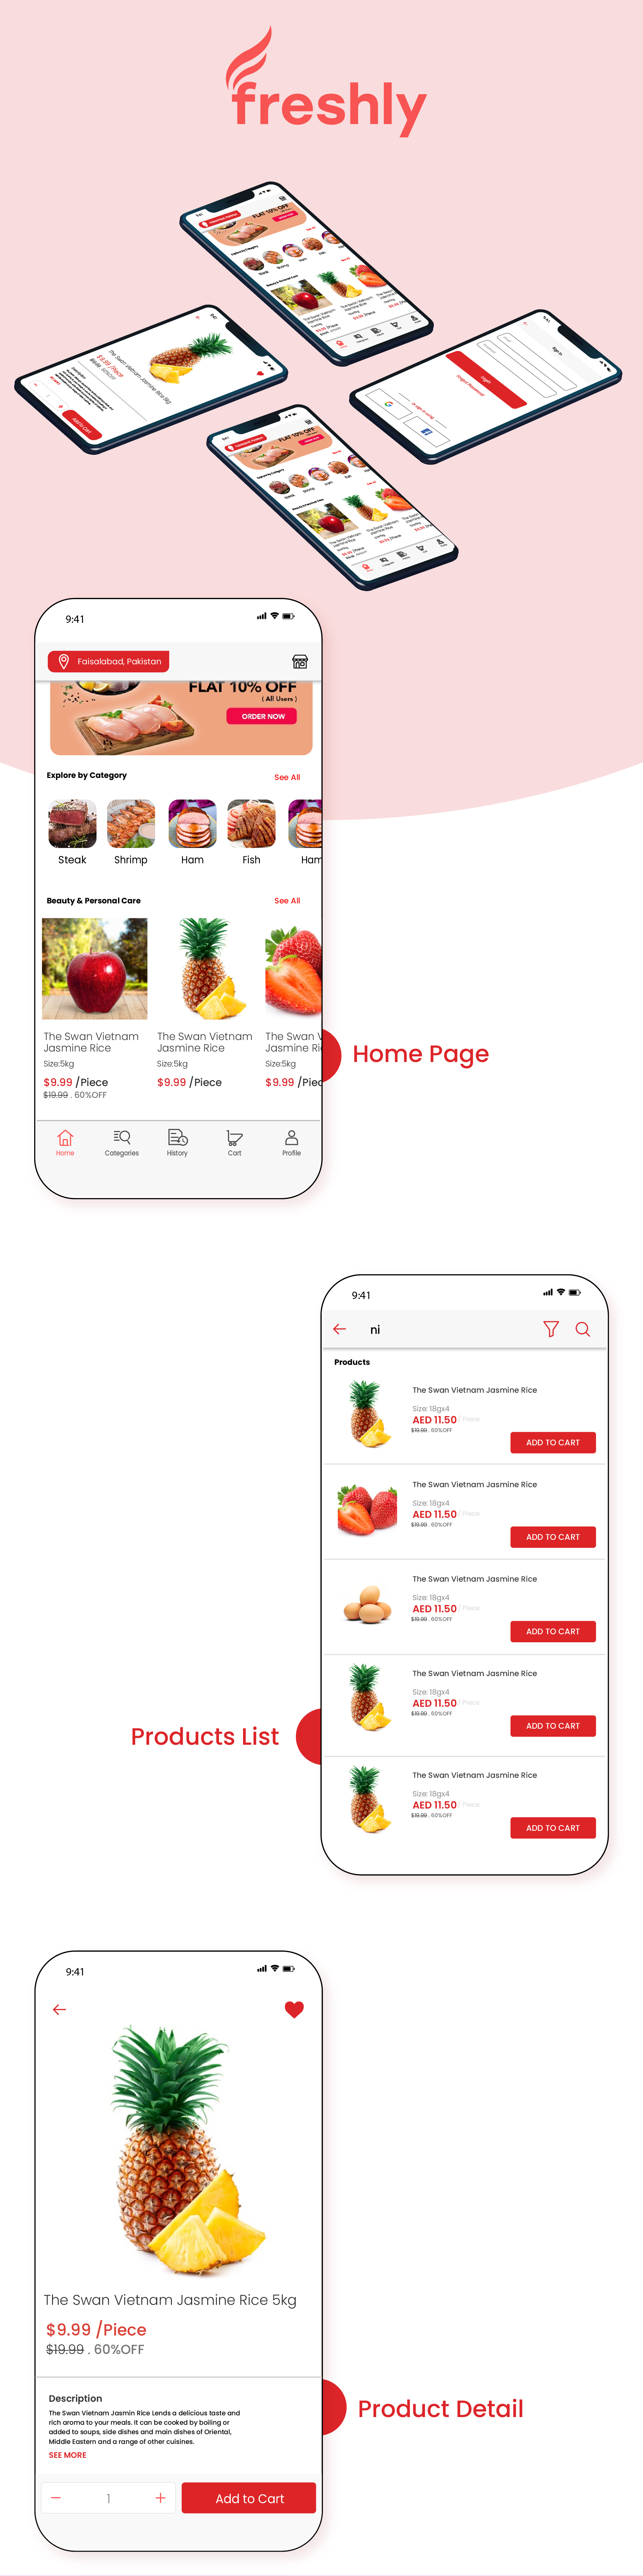 Native Multi Vendor Grocery, Food, Pharmacy, Store Delivery Mobile App with Admin Panel - 2